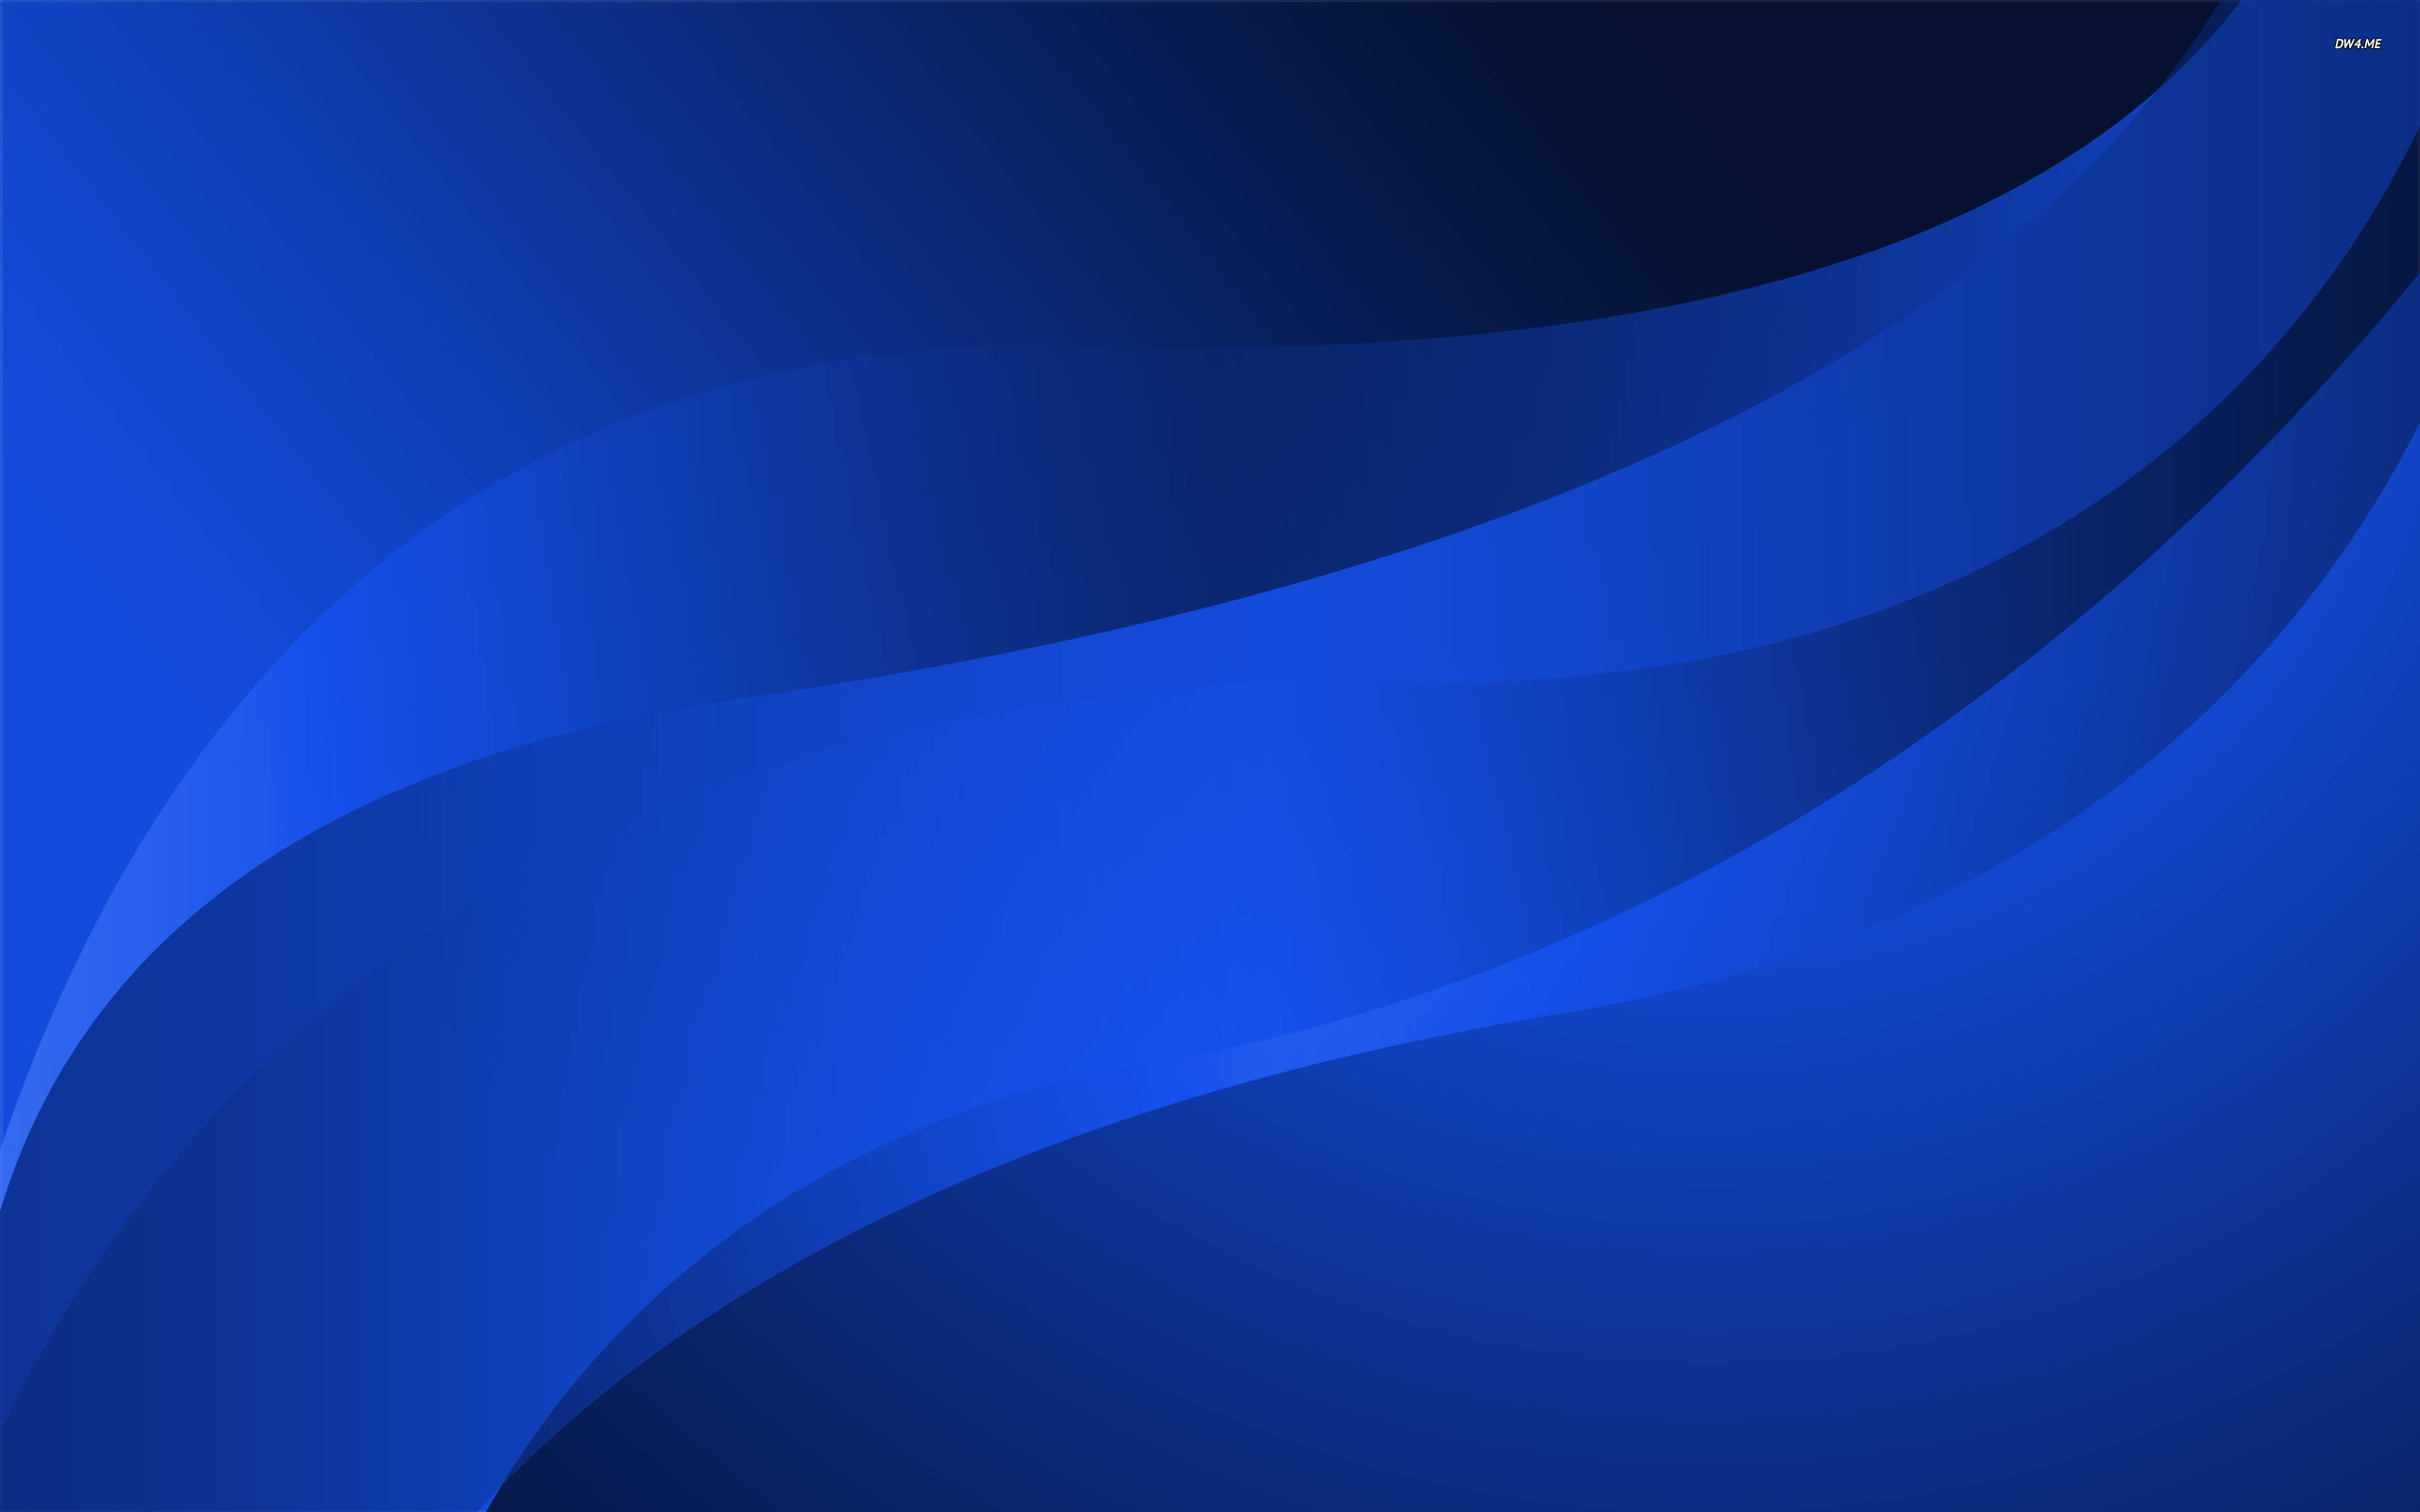 Blue Wallpaper   Dr Odd 2560x1600